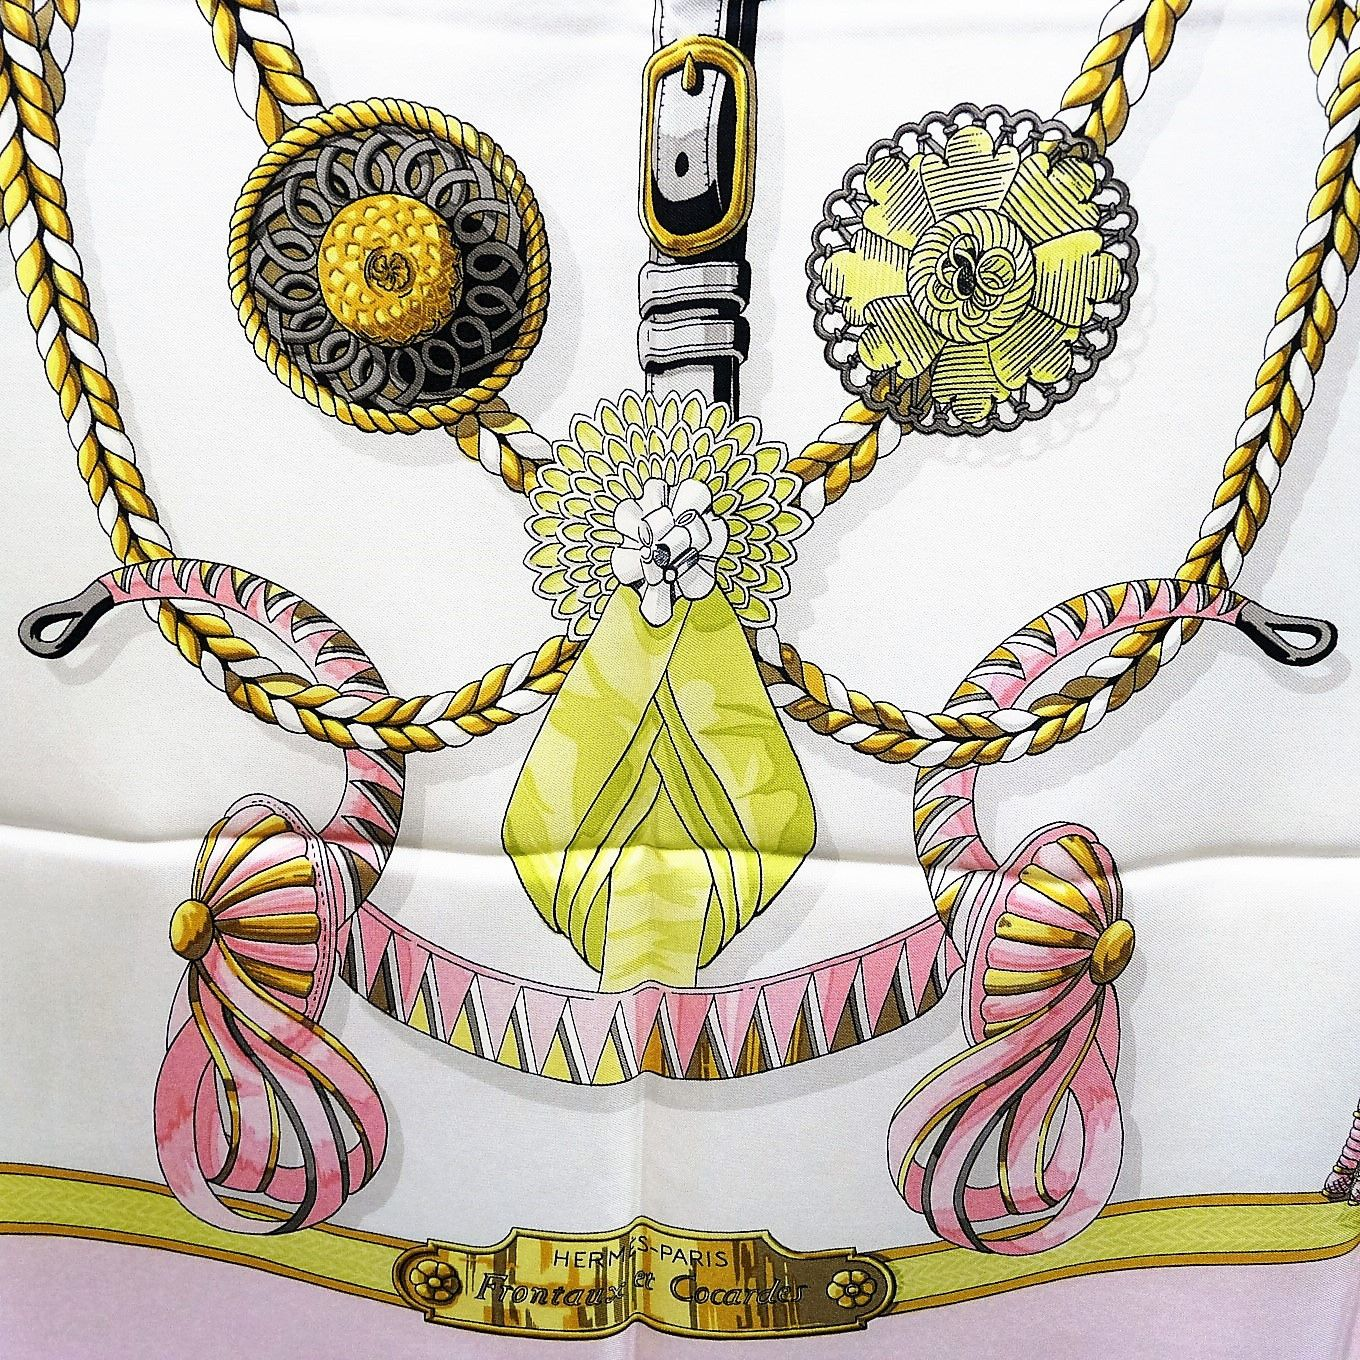 950d7430df03 Authentic Hermes Silk Scarf Frontaux et Cocardes Pink Green Early Issu –  Carre de Paris